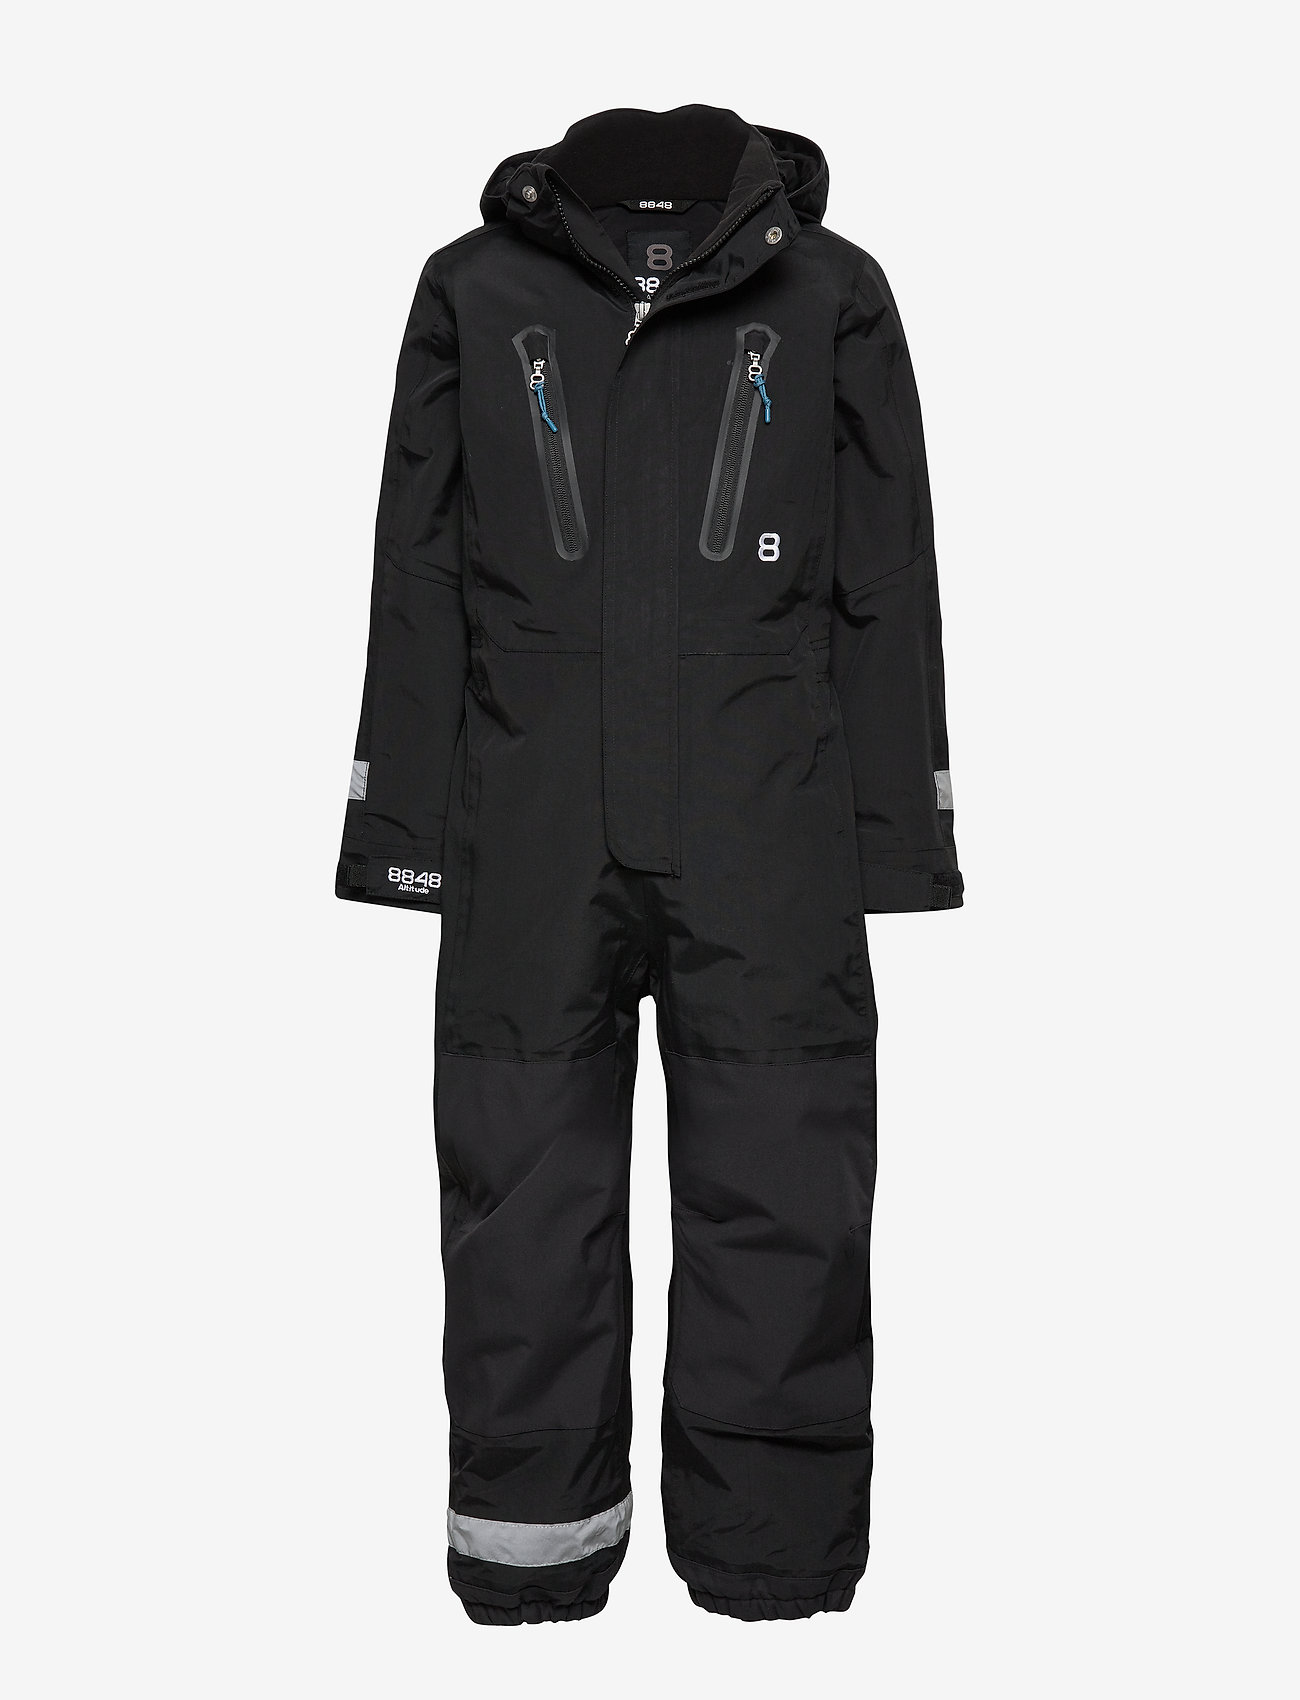 8848 Altitude - Karel Minior suit - snowsuit - black - 0